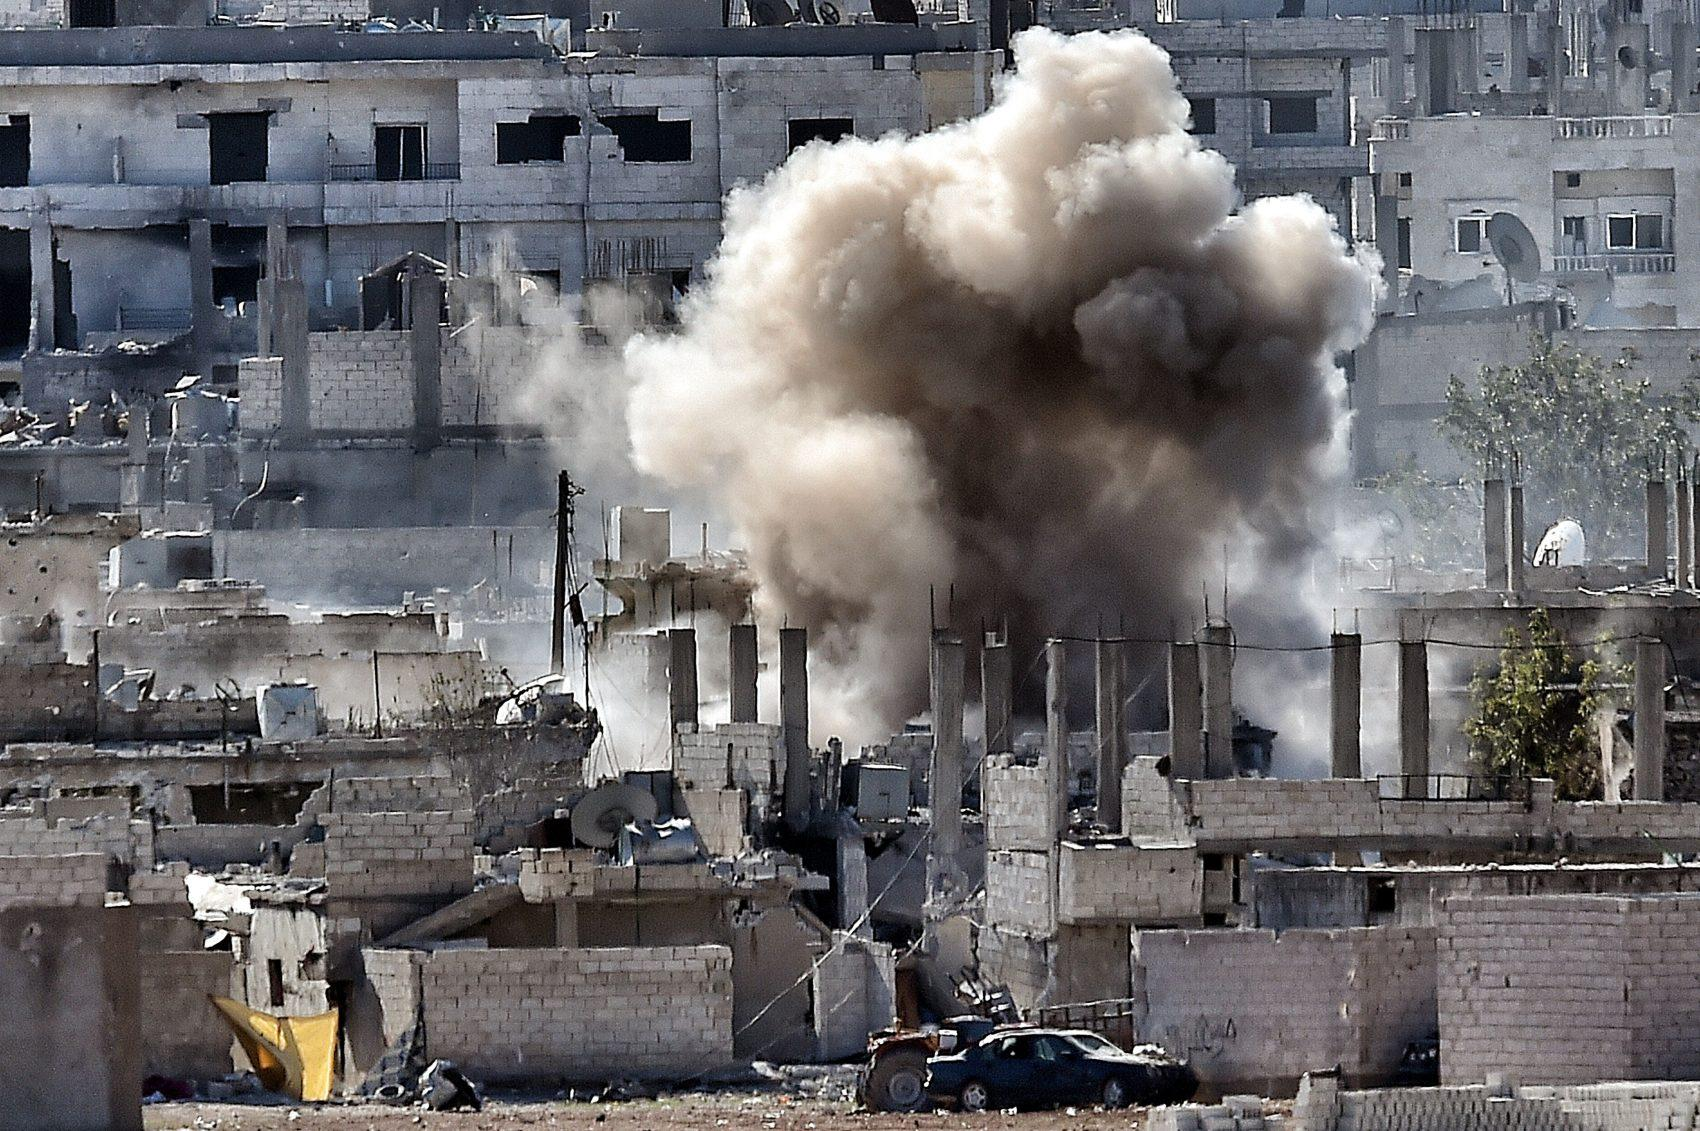 United States to withdraw from Syria, declares ISIS 'almost completely destroyed'